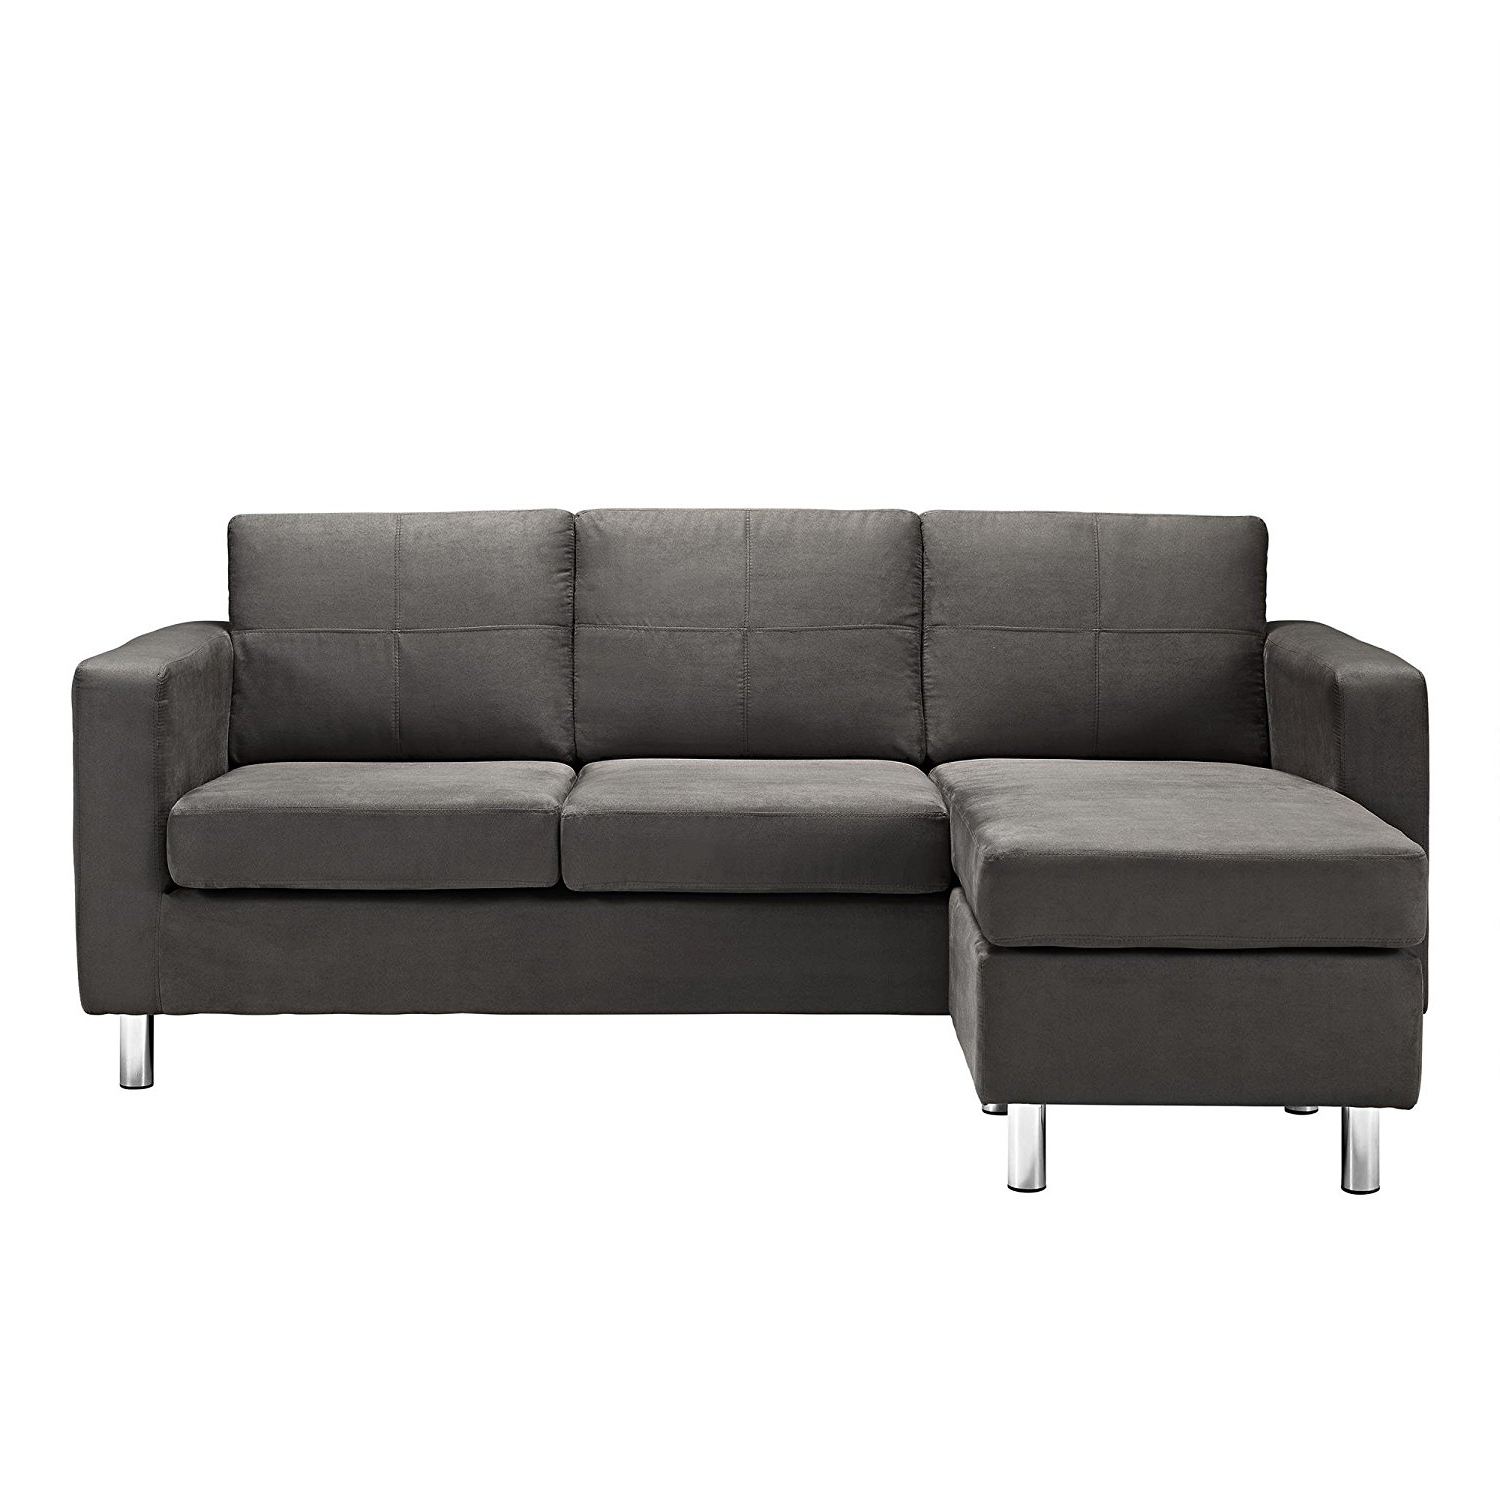 Amazon: Dorel Living Small Spaces Configurable Sectional Sofa Throughout Current Sectional Sofas At Amazon (View 2 of 15)